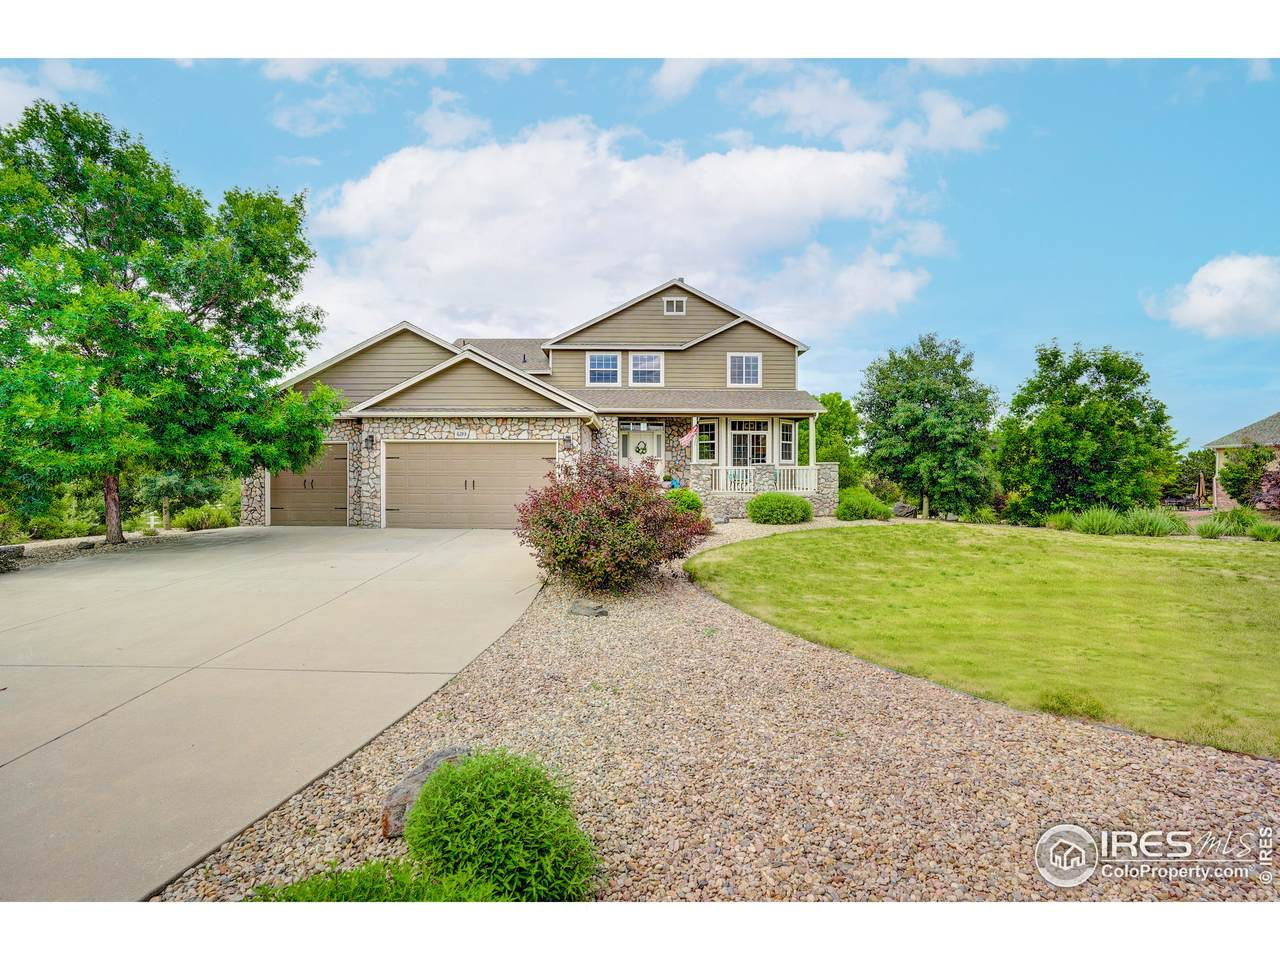 6193 167th Ave - Photo 1